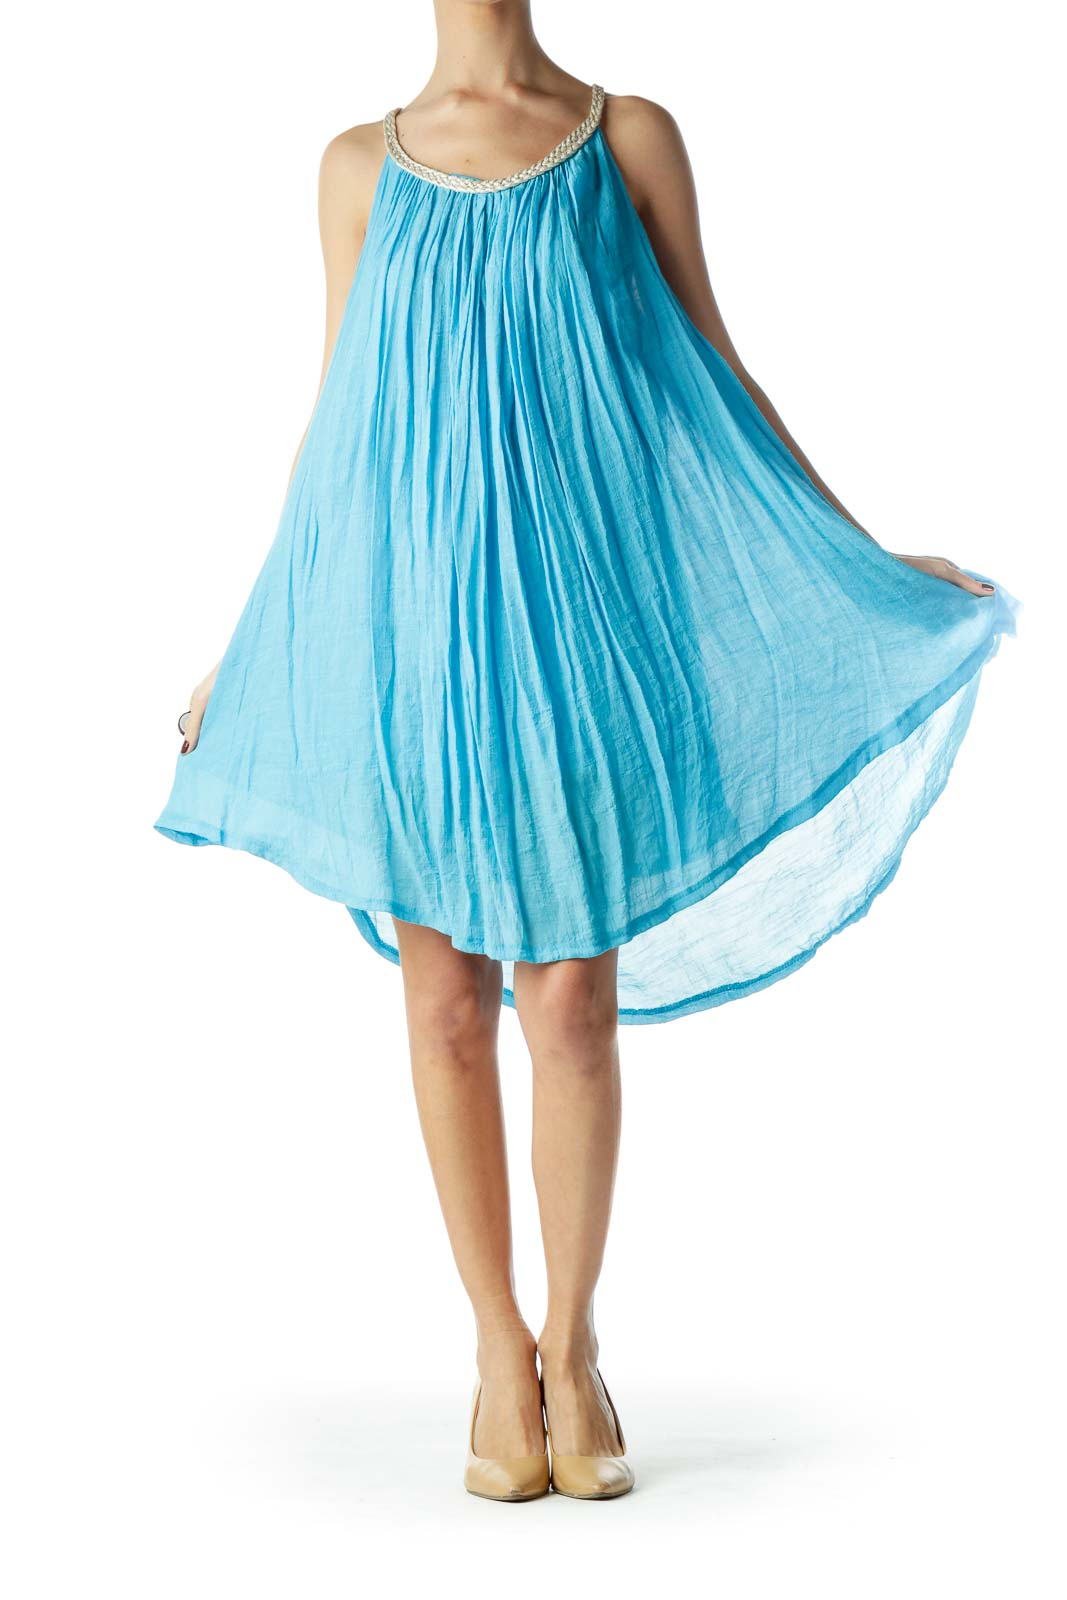 Turquoise Blue Halter Neckline Flared Dress